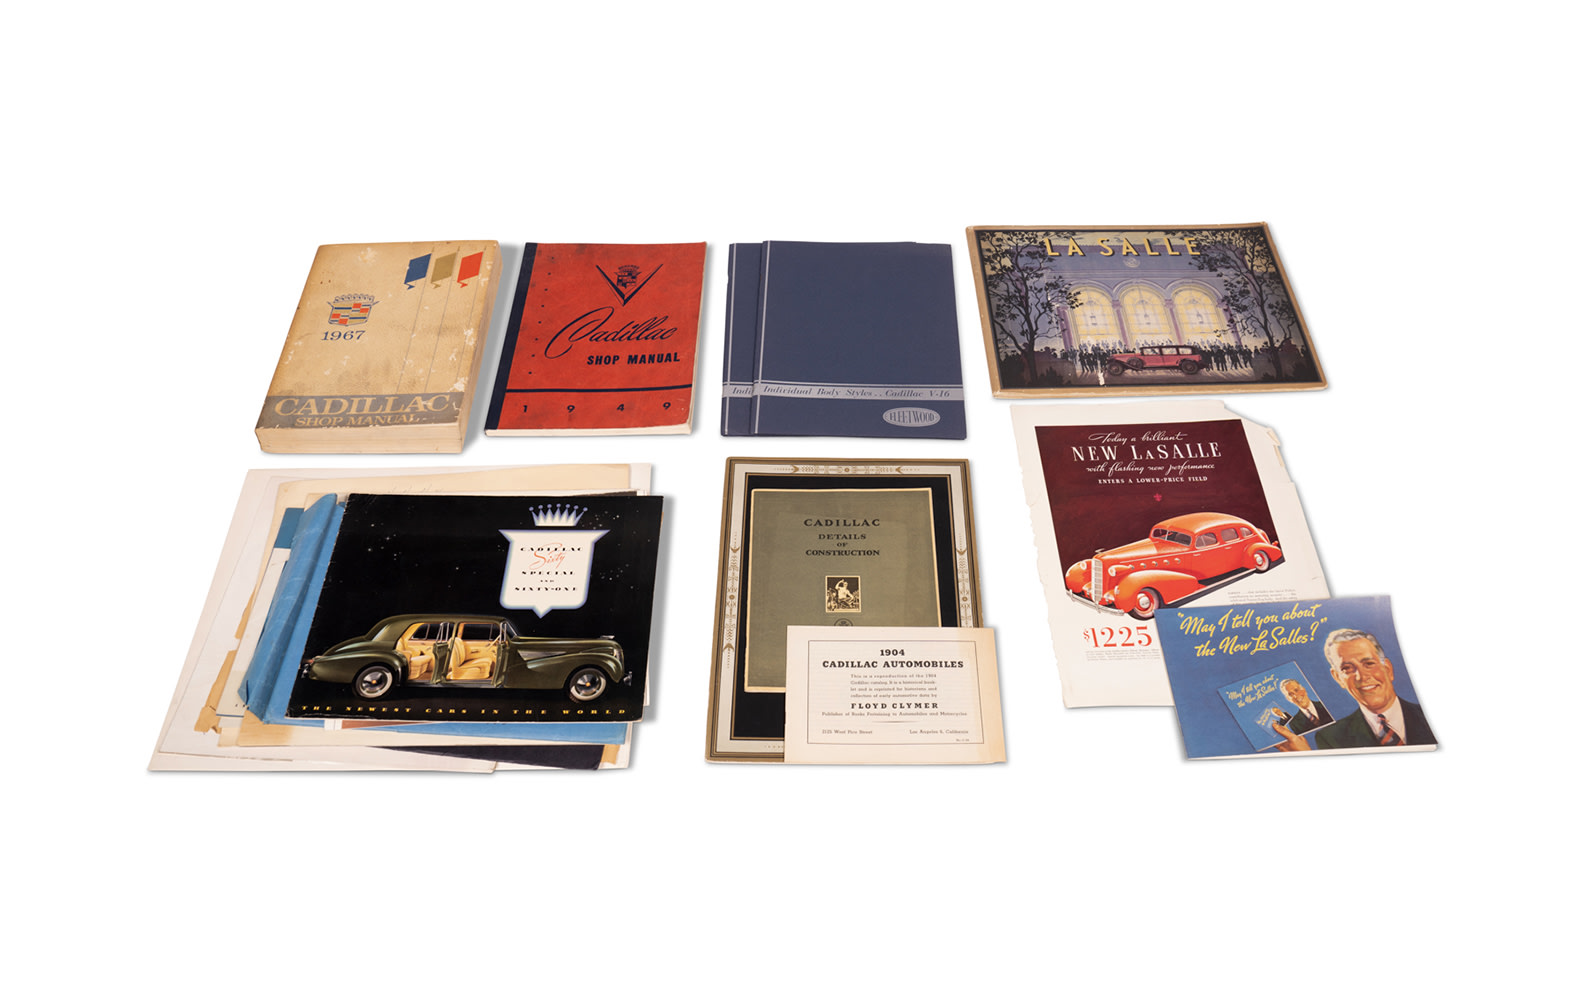 Assorted Cadillac and LaSalle Literature